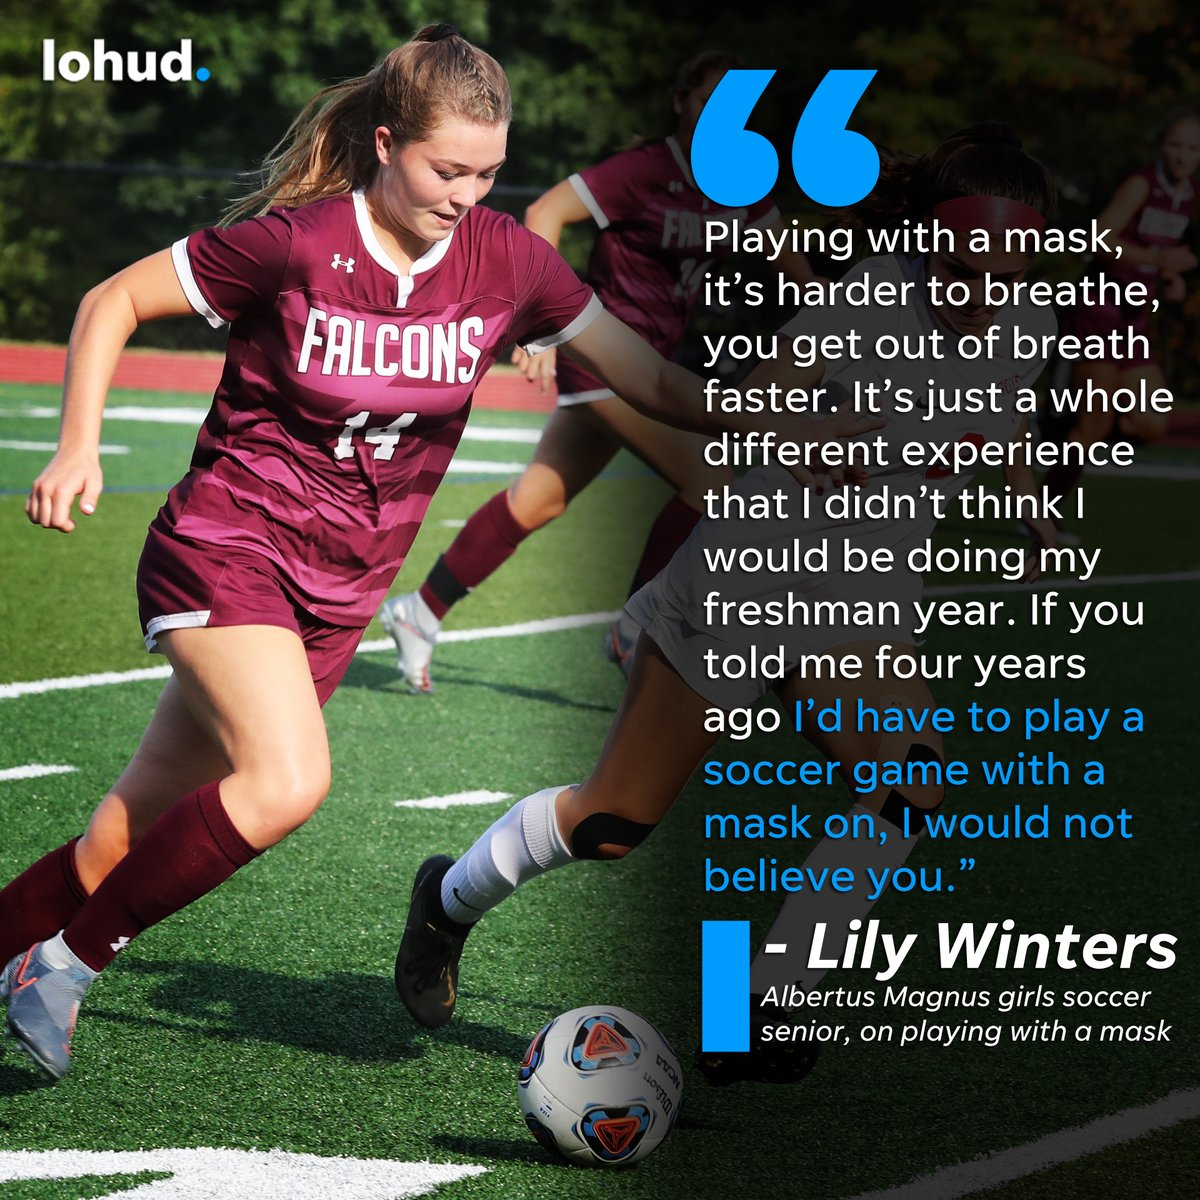 ICYMI - Though there remain some questions on how things will proceed, Section 1's soccer teams are excited to get back on the pitch starting next week: https://t.co/wn90UHLPaE  @lohudinsider @hoopsmbd @erapay5 @GirlsSoccerAMHS @NRockathletics @AMHSFalcons https://t.co/uSATMtHw5i